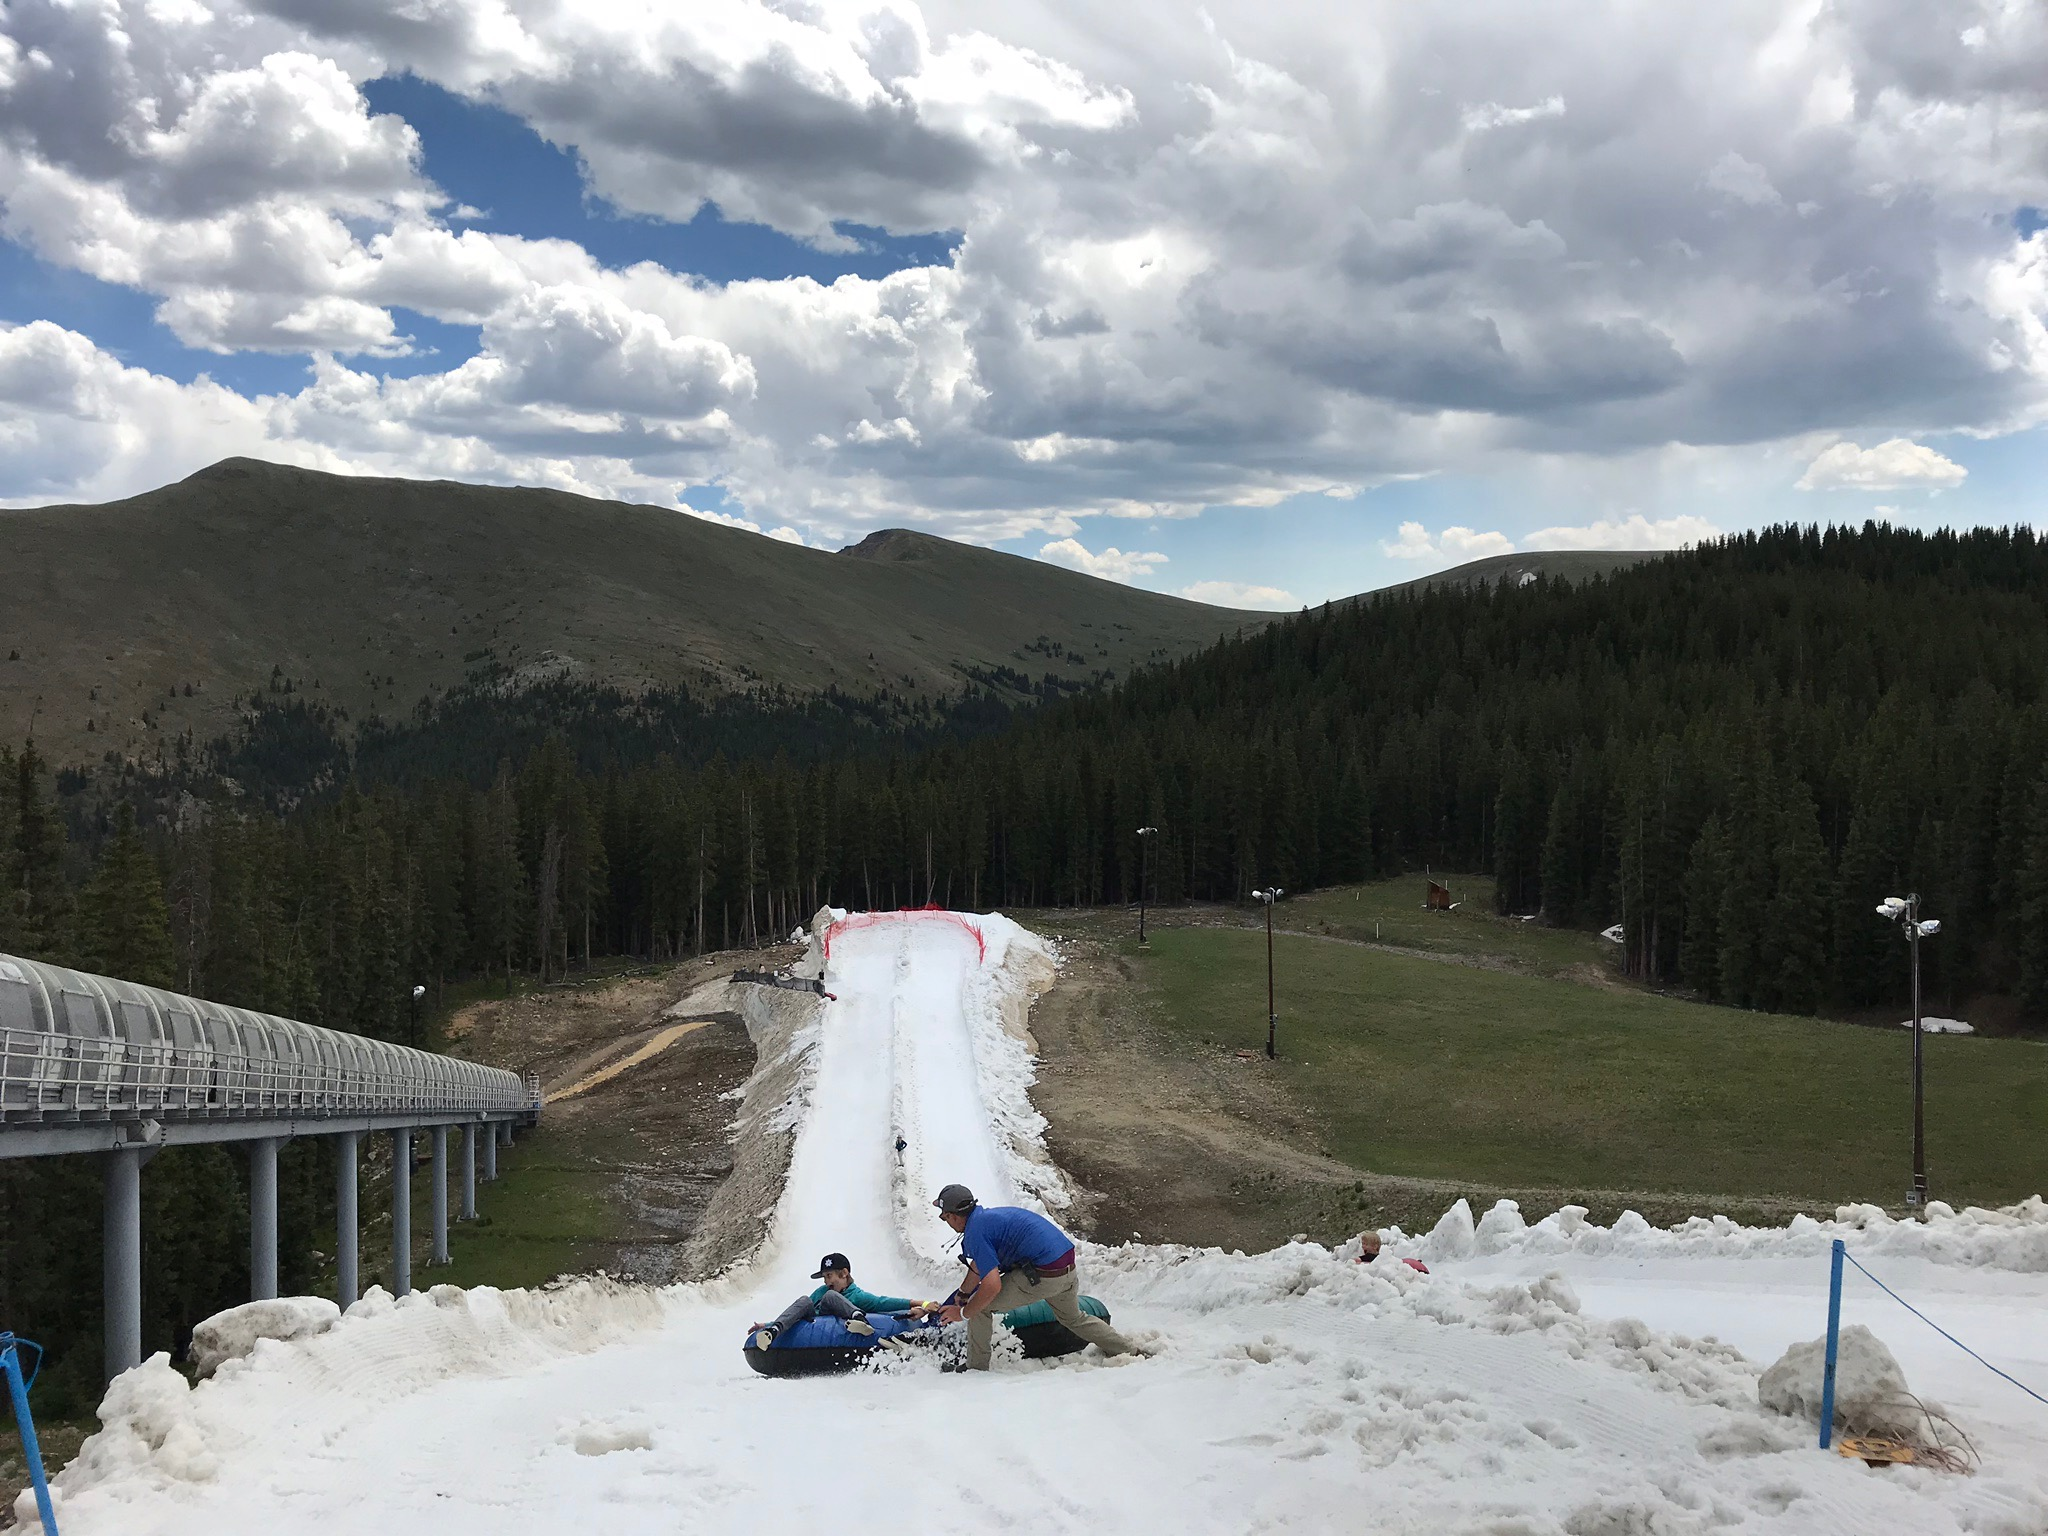 Snow Tubing at Keystone